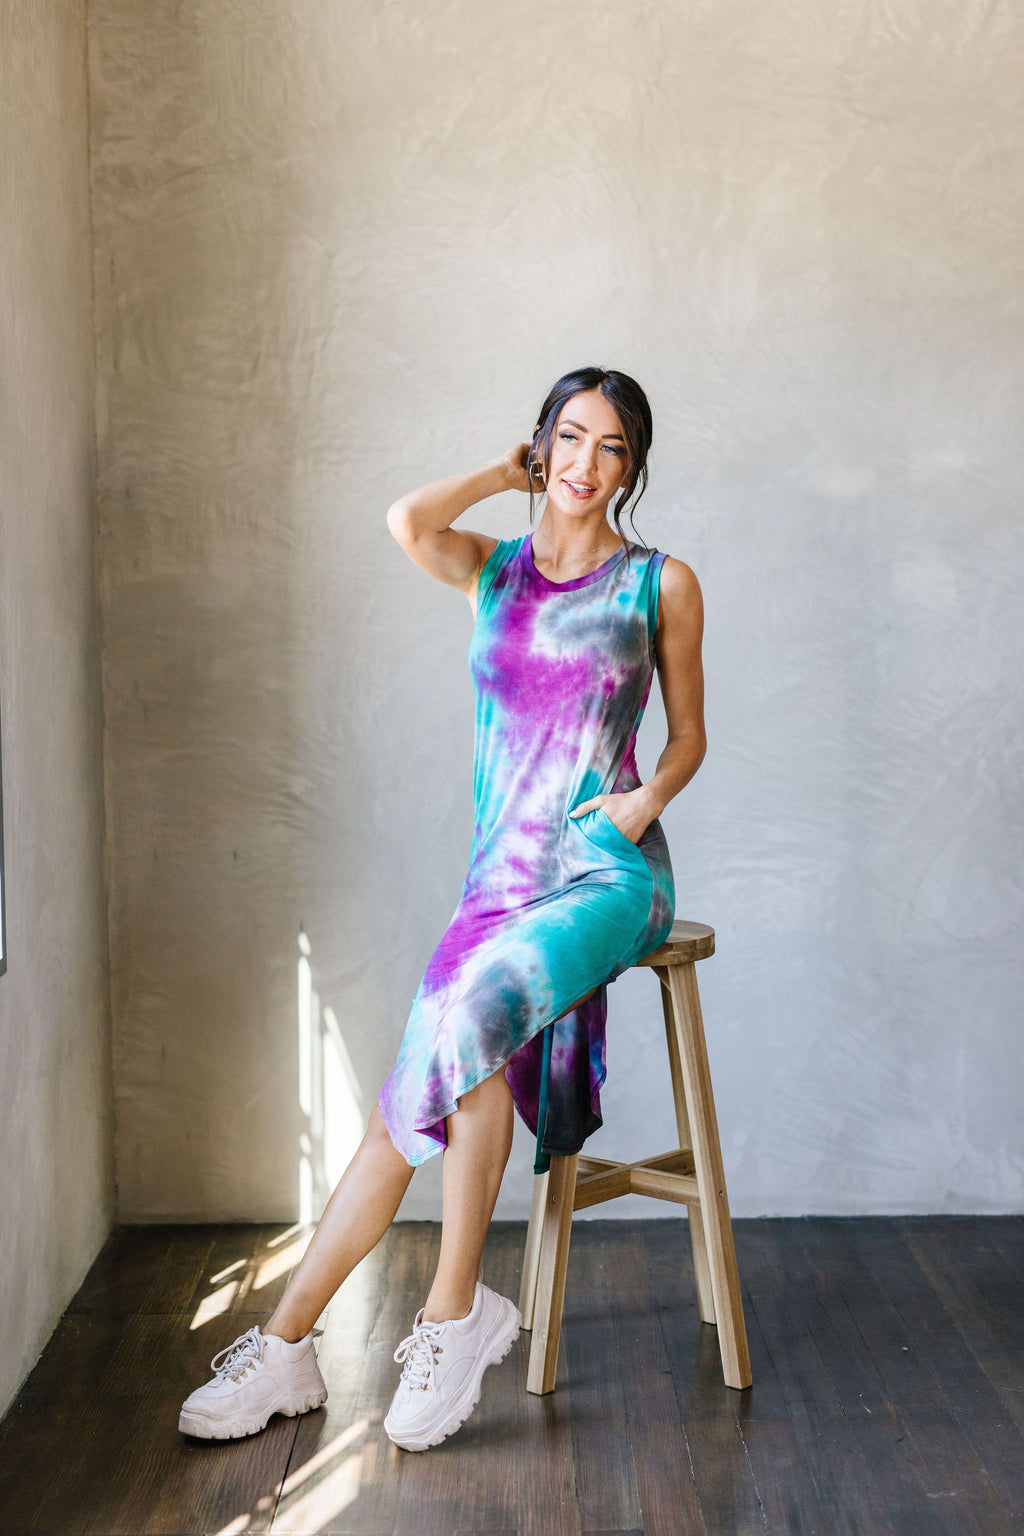 Cool Vibes Tie Dye Midi Dress-1XL, 2XL, 3XL, 8-25-2020, 9-11-2020, BFCM2020, Bonus, Dresses, Group A, Group B, Group C, Group D, Group T, Large, Medium, Plus, Small, XL, XS-Womens Artisan USA American Made Clothing Accessories